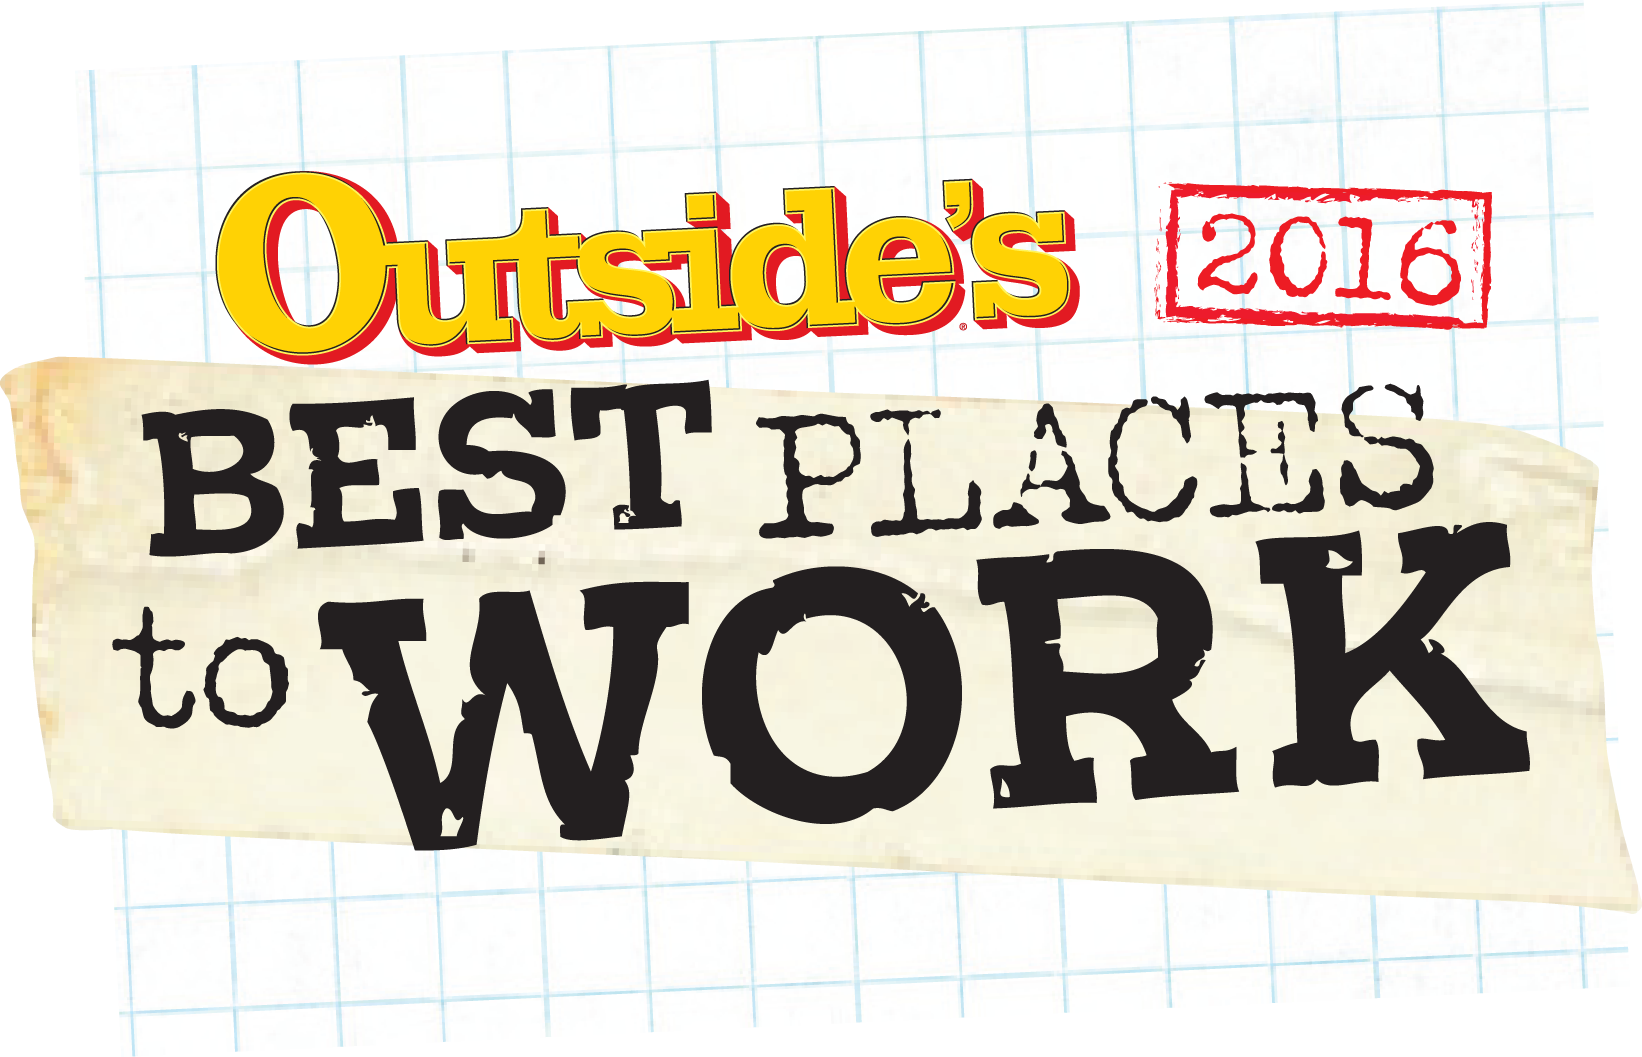 best places to work 5 indianapolis employers make glassdoor's 2018 'best places to work' list four companies either based in indiana or that have strong indiana ties made glasdoor's 2018 'best places to work' list .